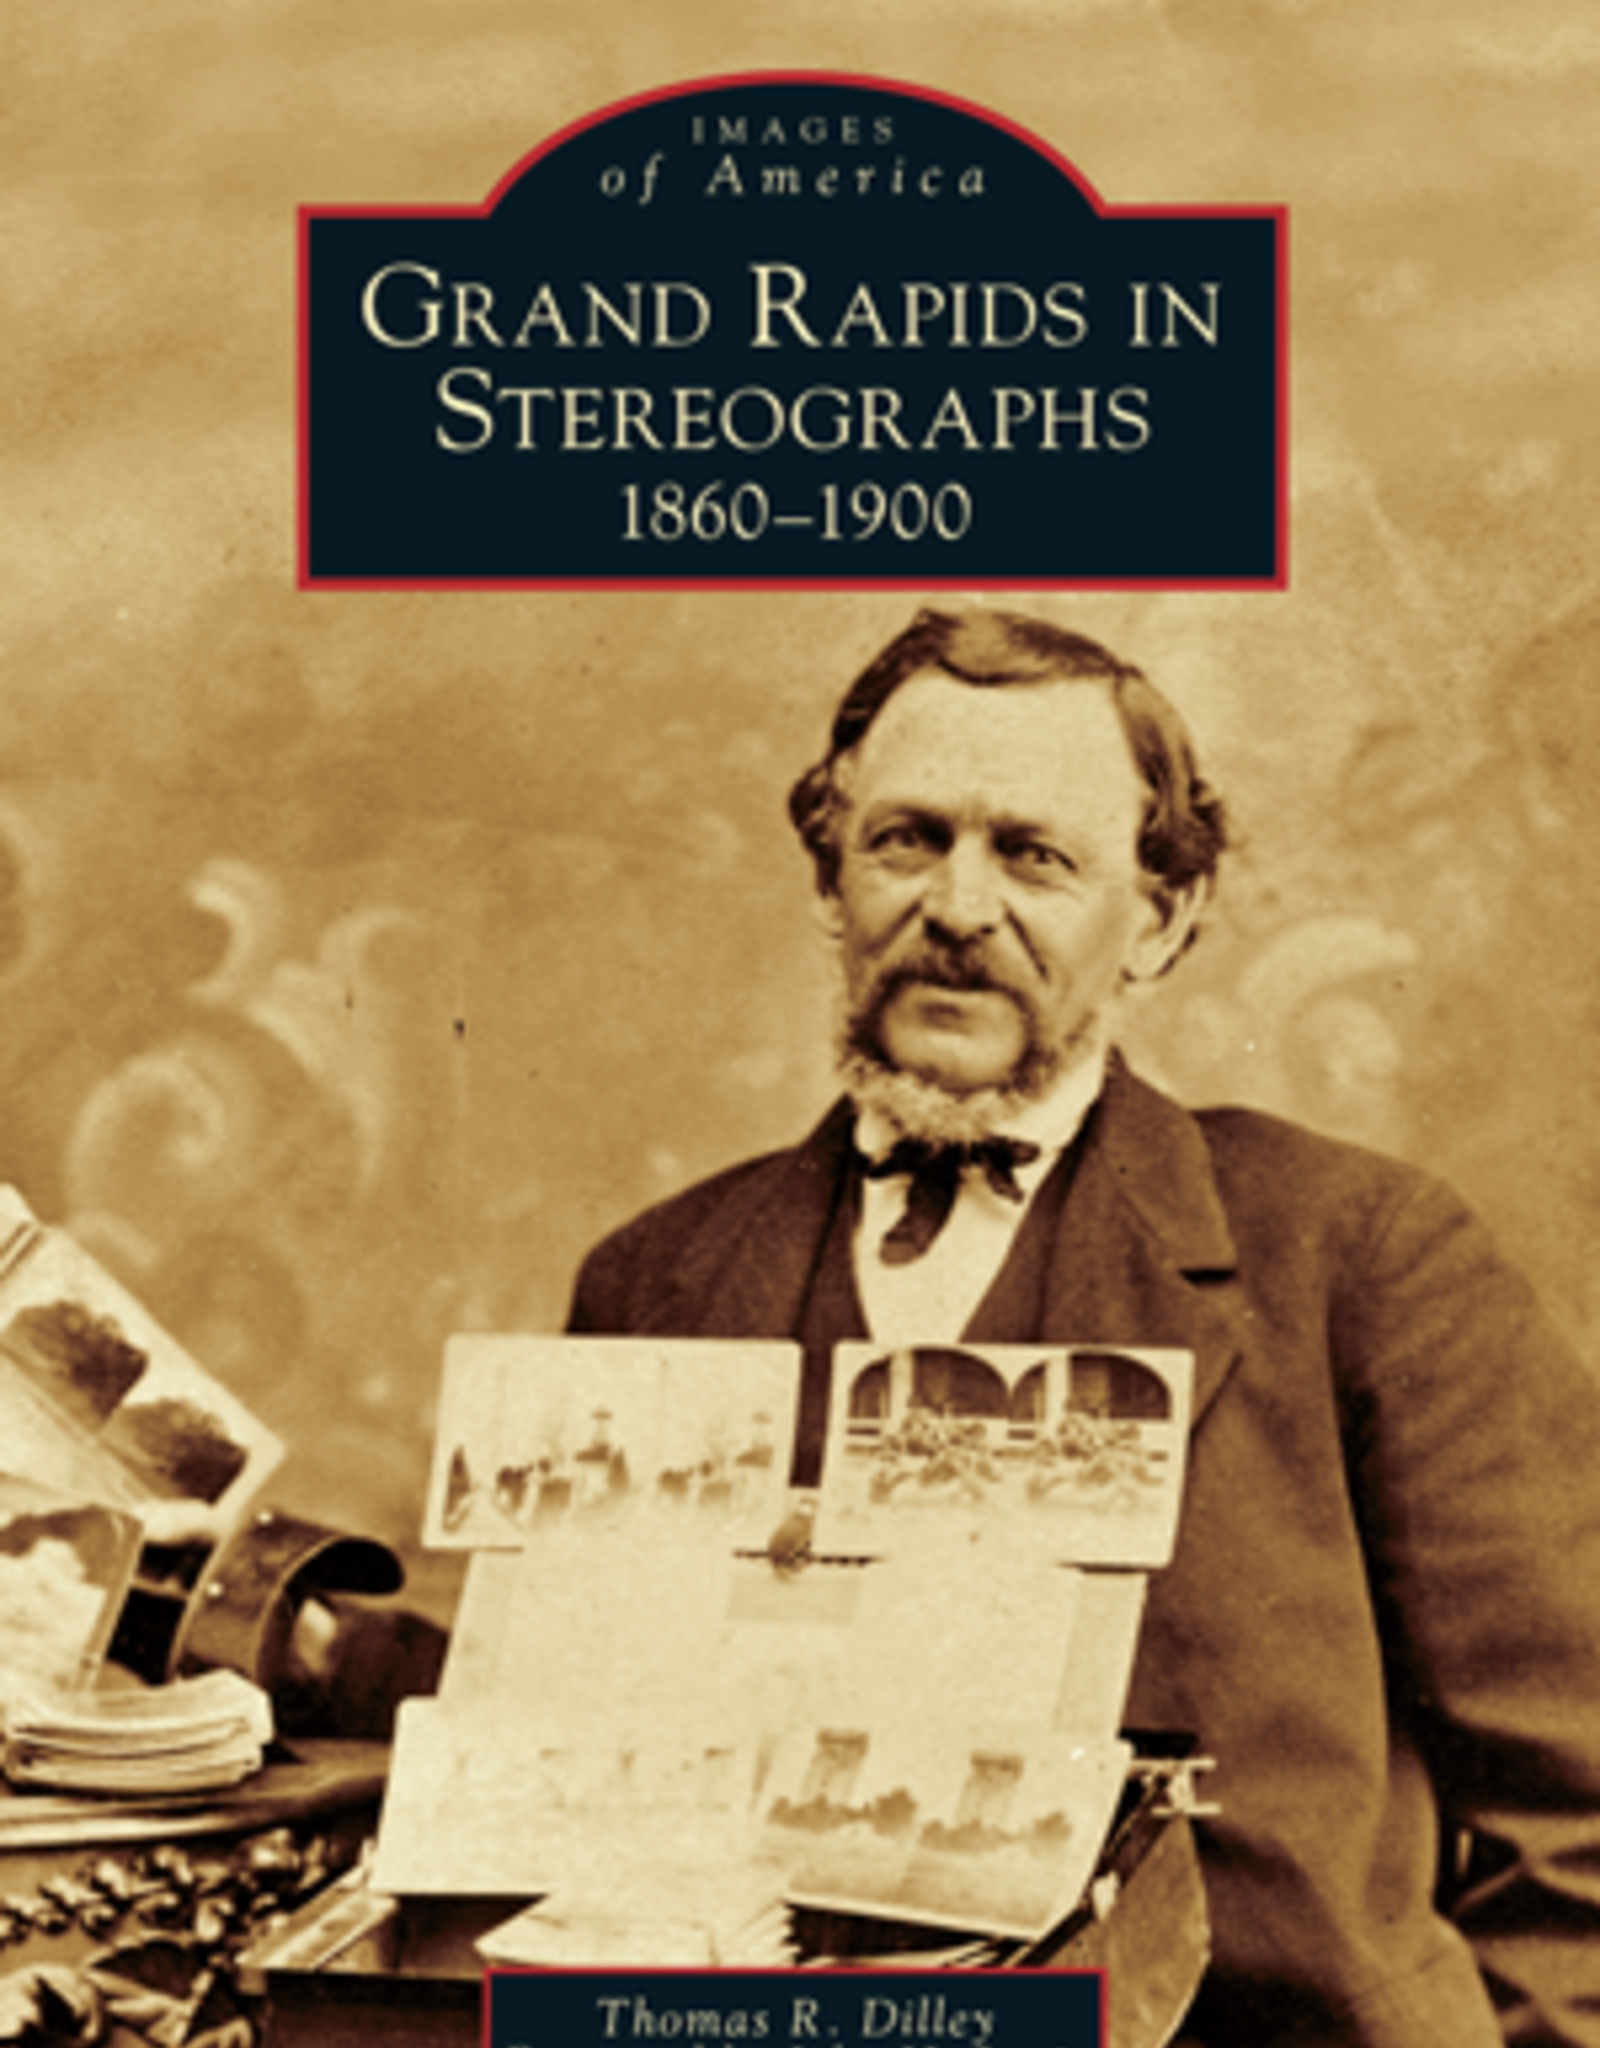 Grand Rapids in Stereographs